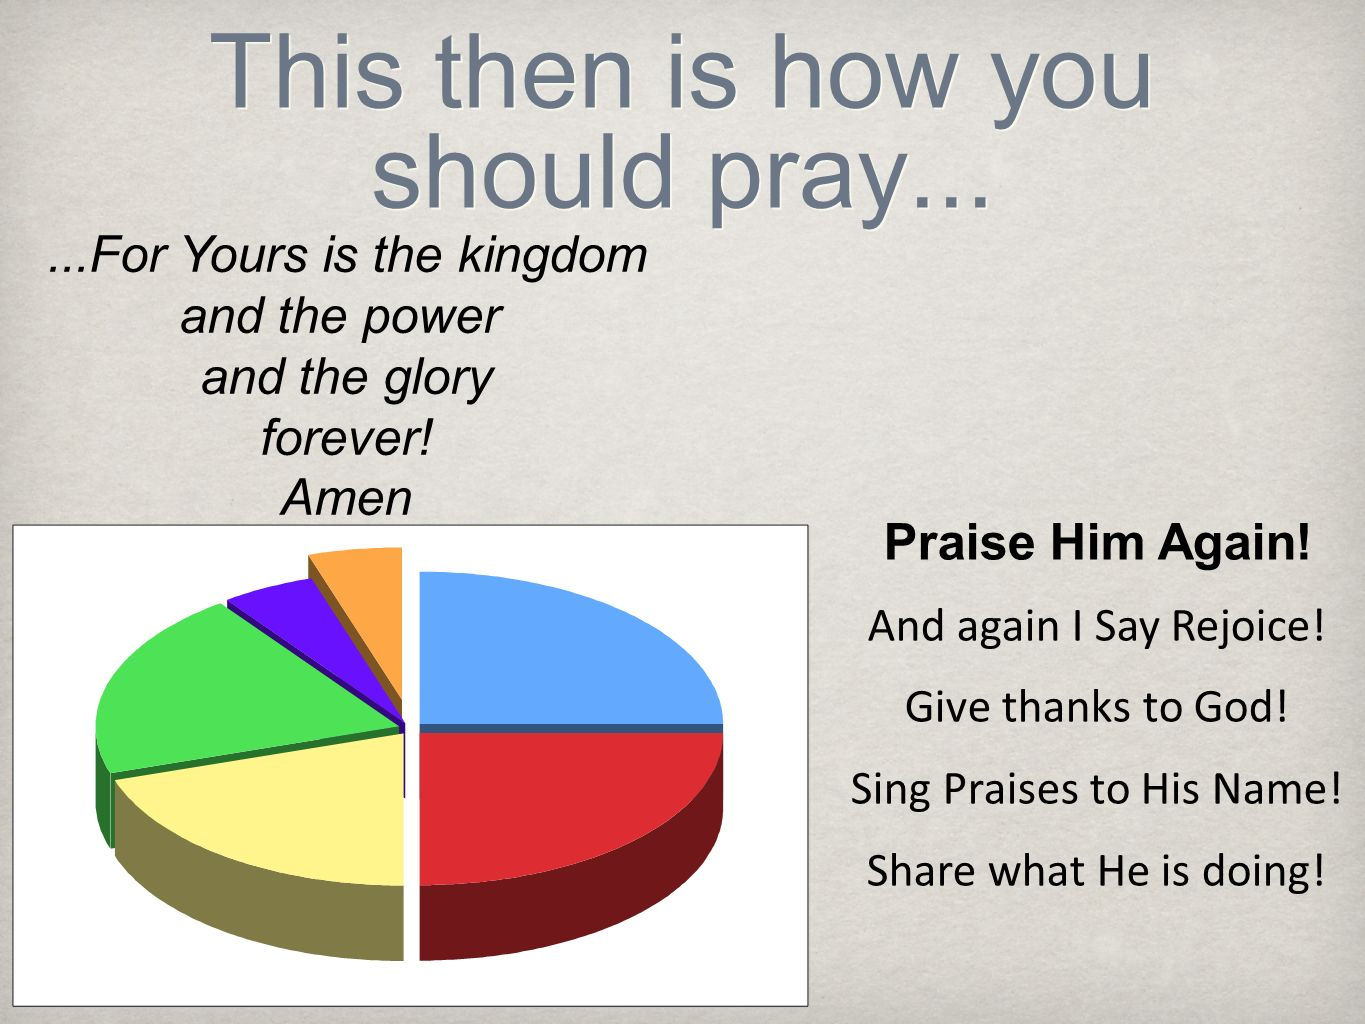 This then is how you should pray...